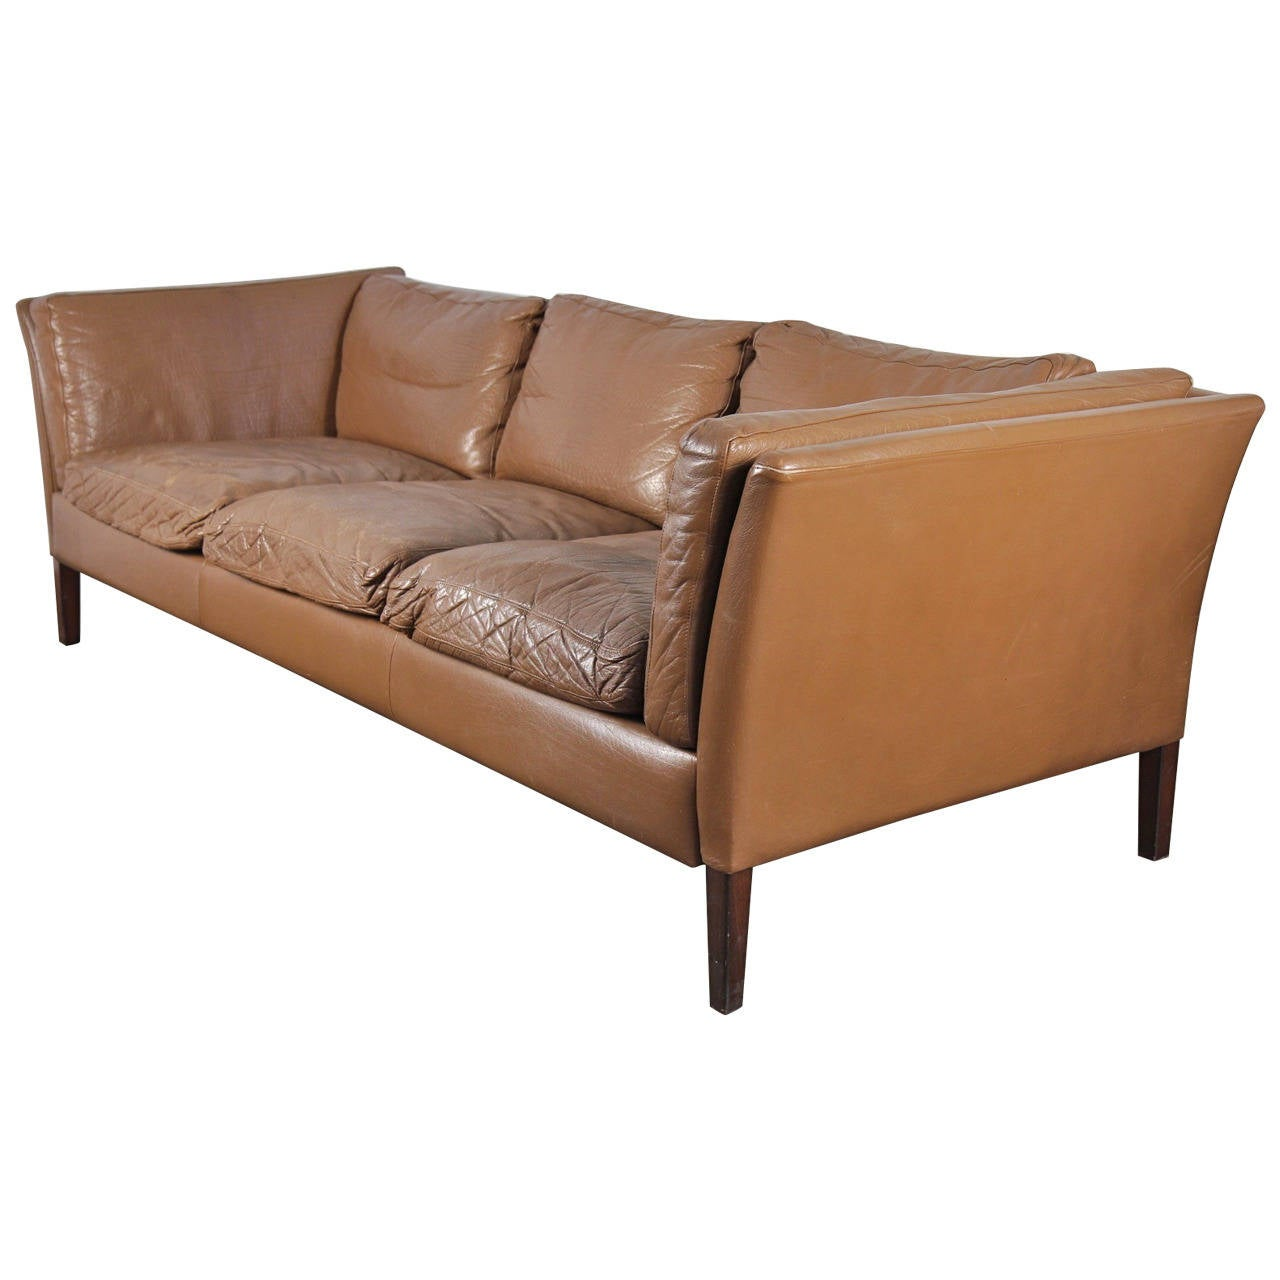 1960s Danish Modern Leather Sofa At 1stdibs